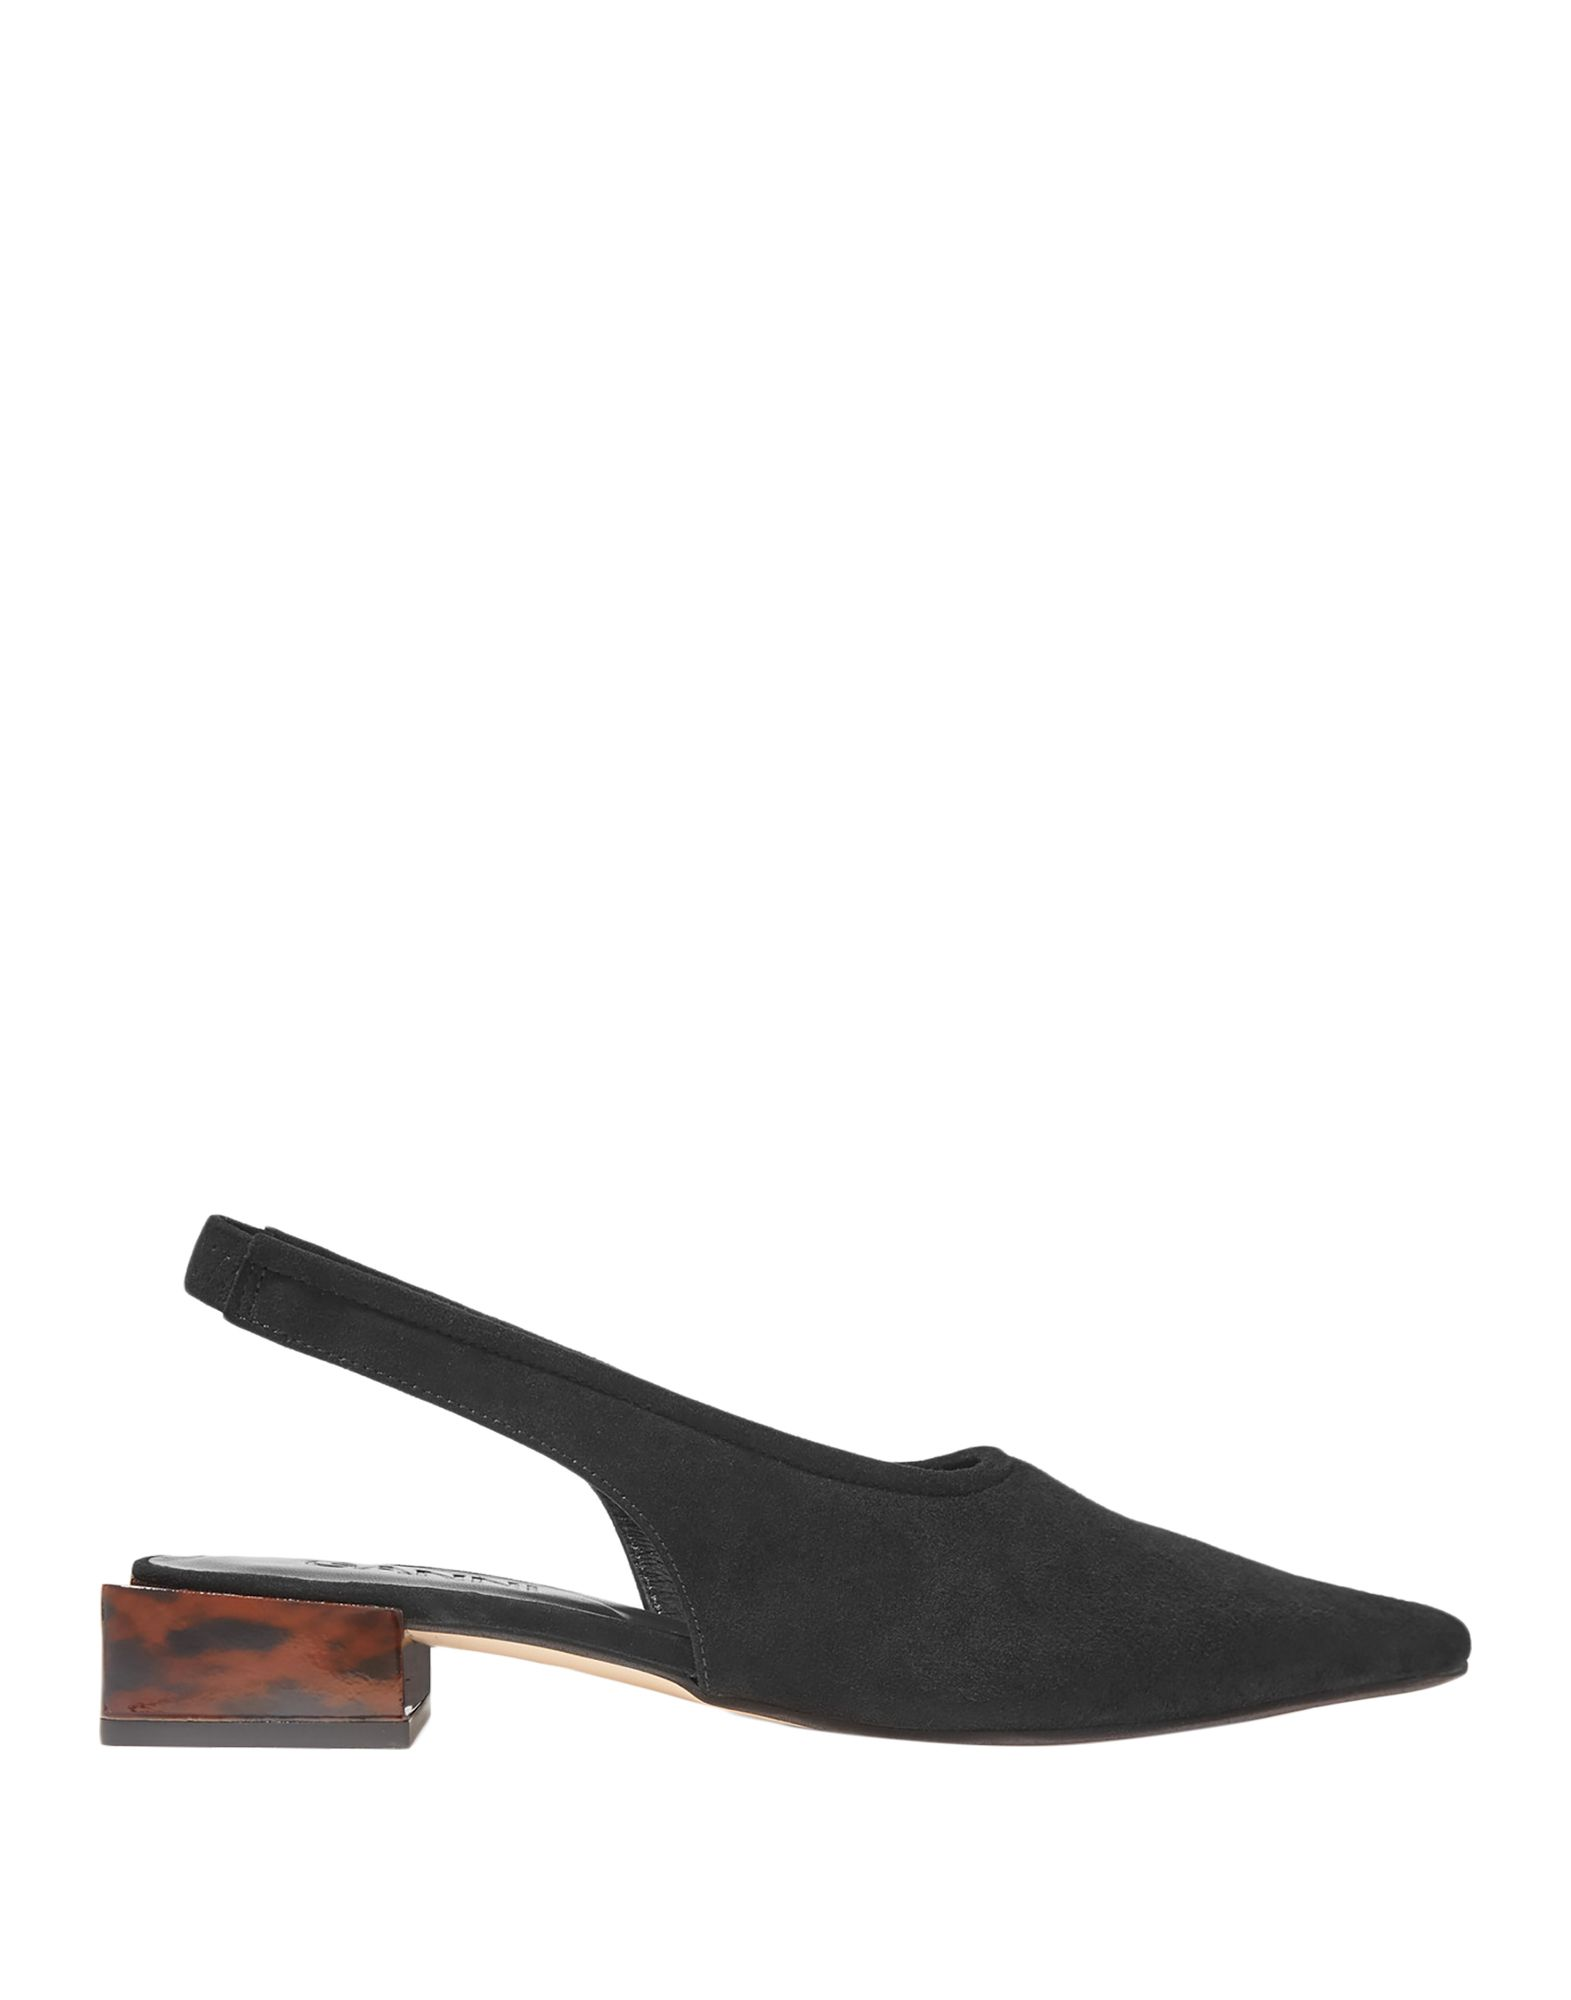 GANNI Pumps. leather, suede effect, no appliqués, solid color, elasticized straps, narrow toeline, geometric heel, leather lining, rubber sole, contains non-textile parts of animal origin, small sized. Soft Leather